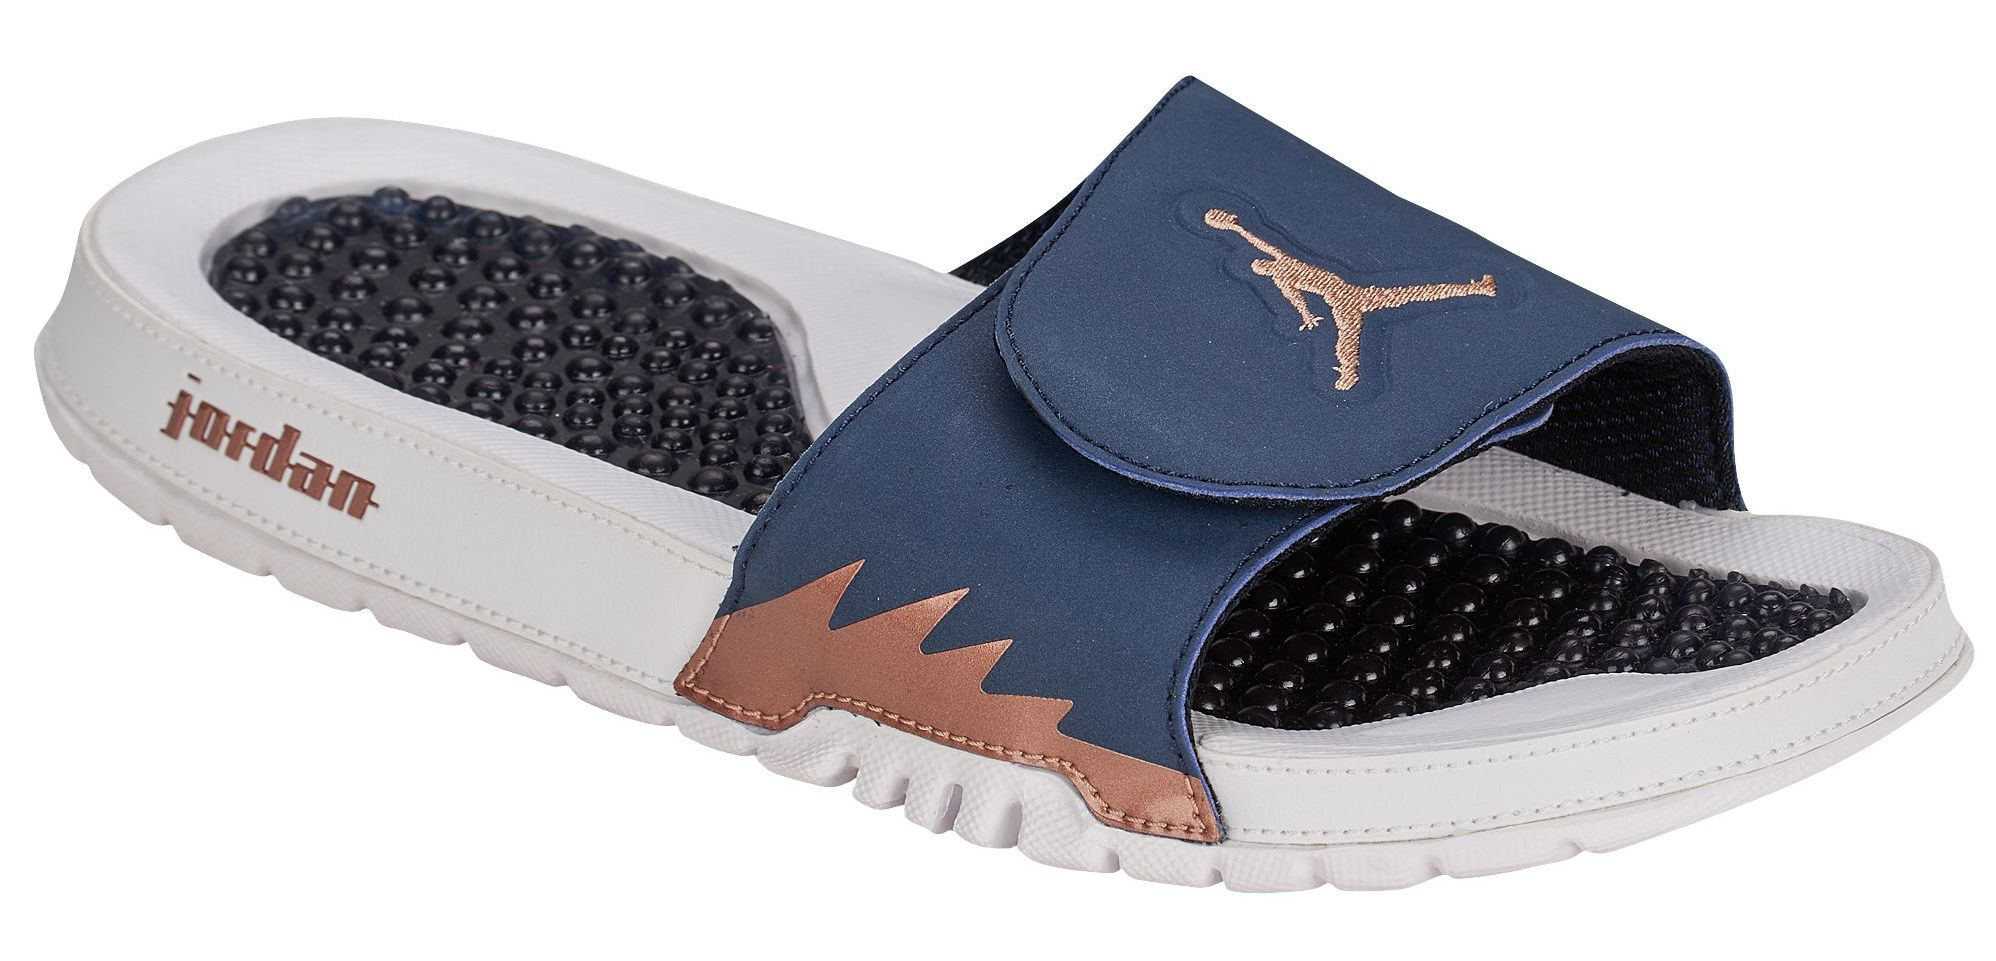 79200a0b6348 Air Jordan Hydro 5 Slide Bronze Medal Product